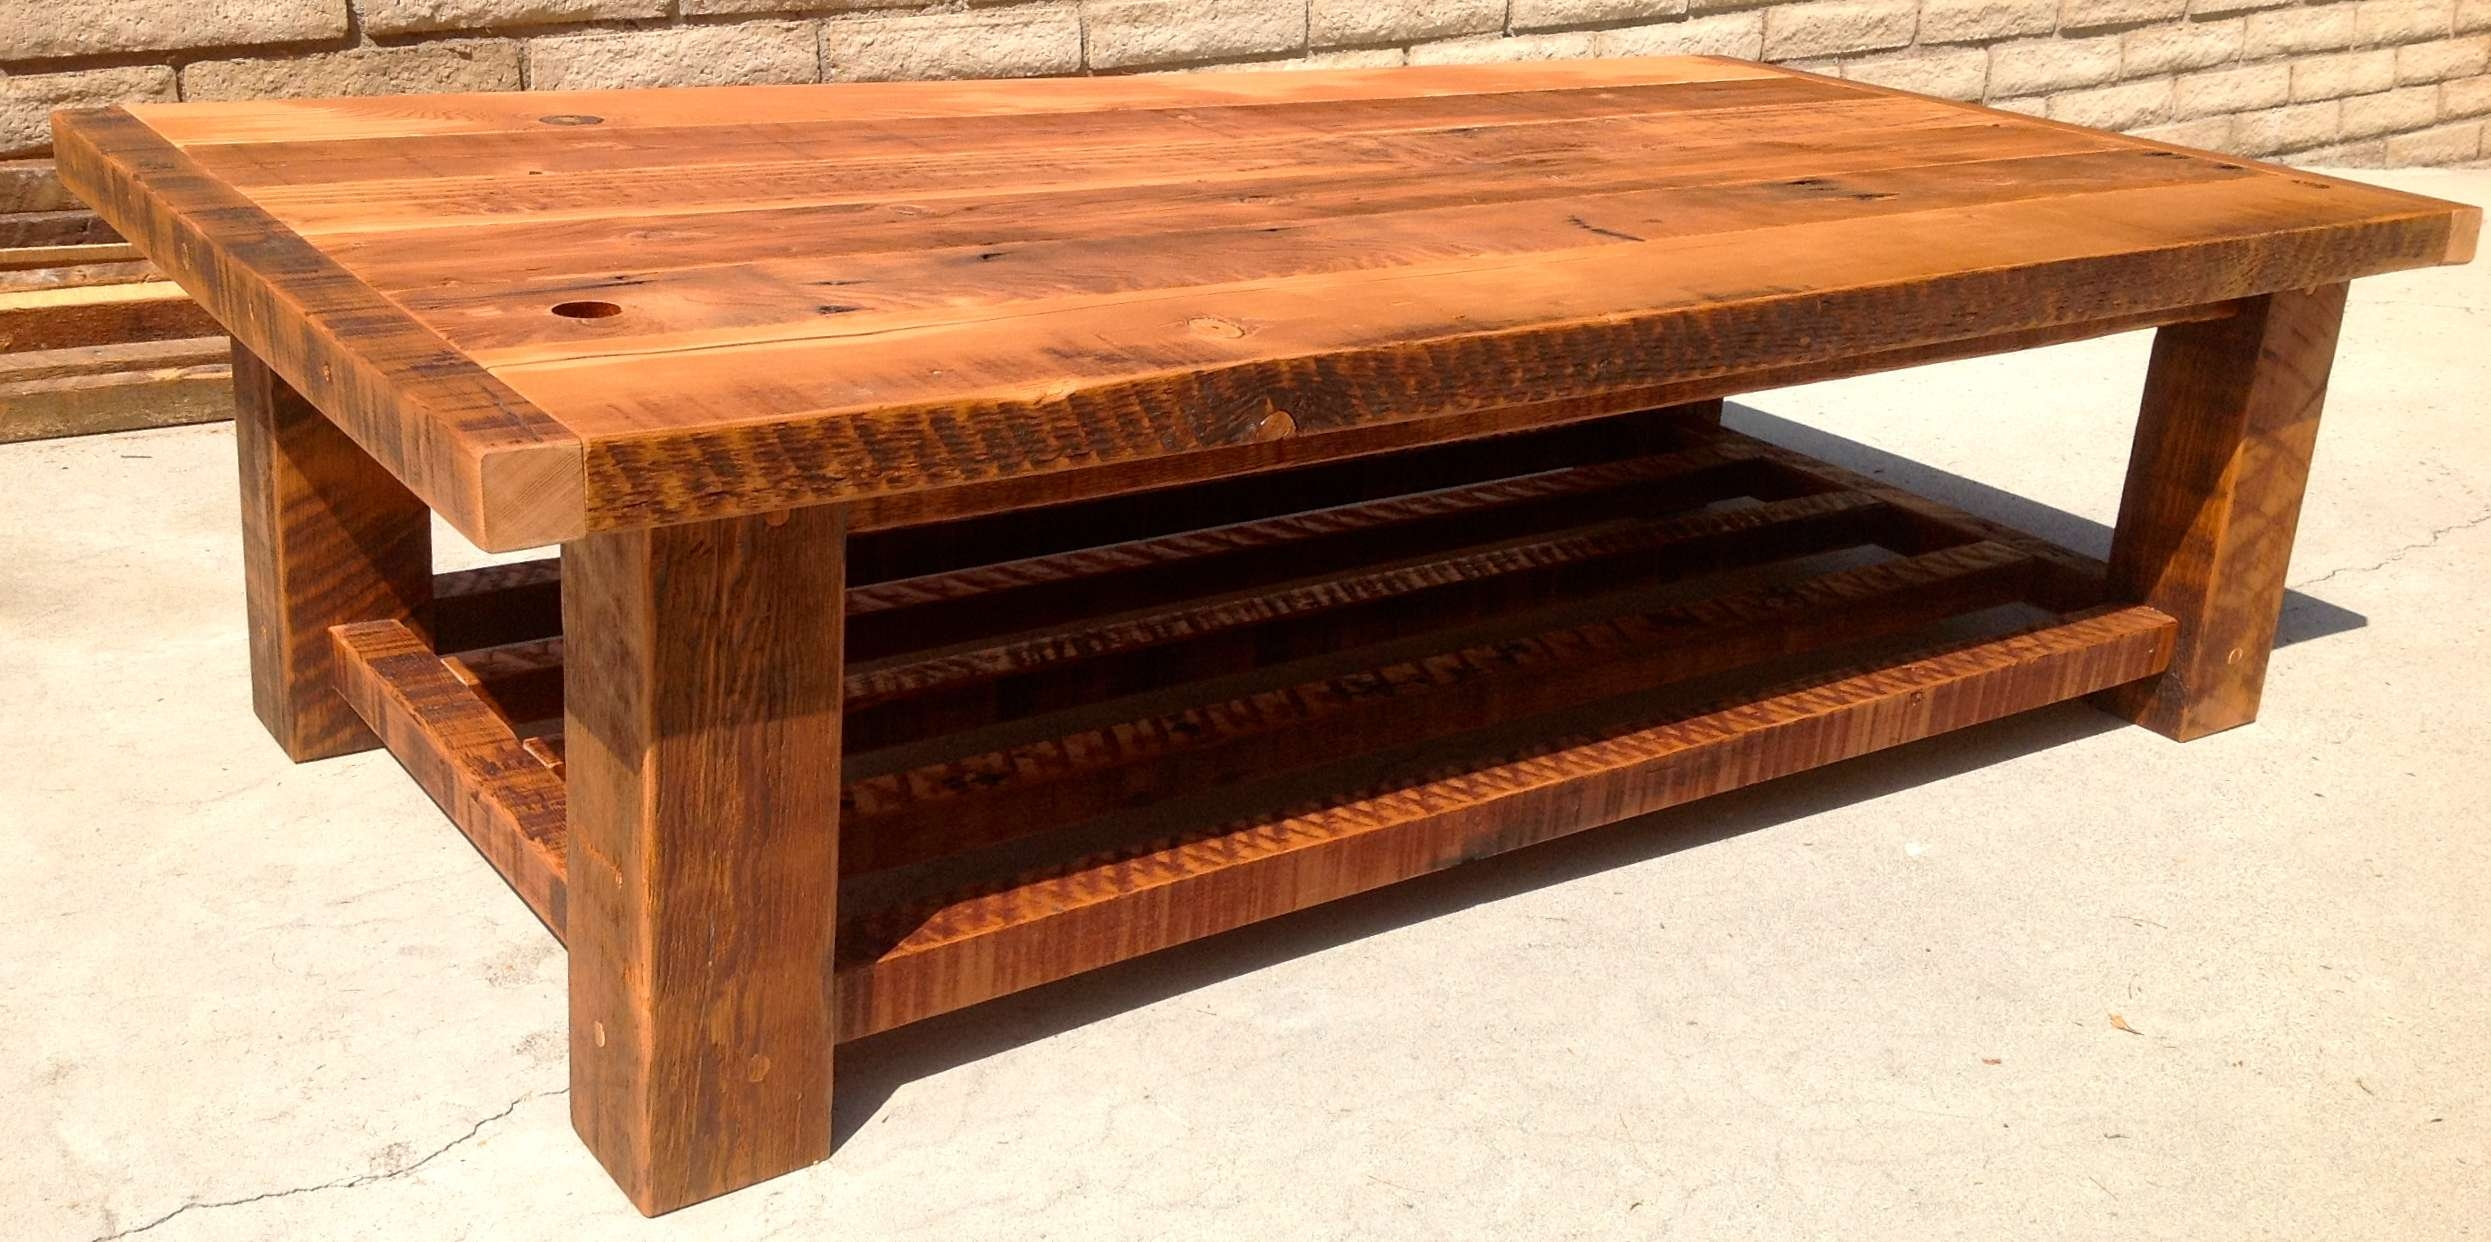 Radiant Light Rustic Wooden Furniture Accessories With With Regard To Most Popular Large Solid Wood Coffee Tables (View 3 of 20)